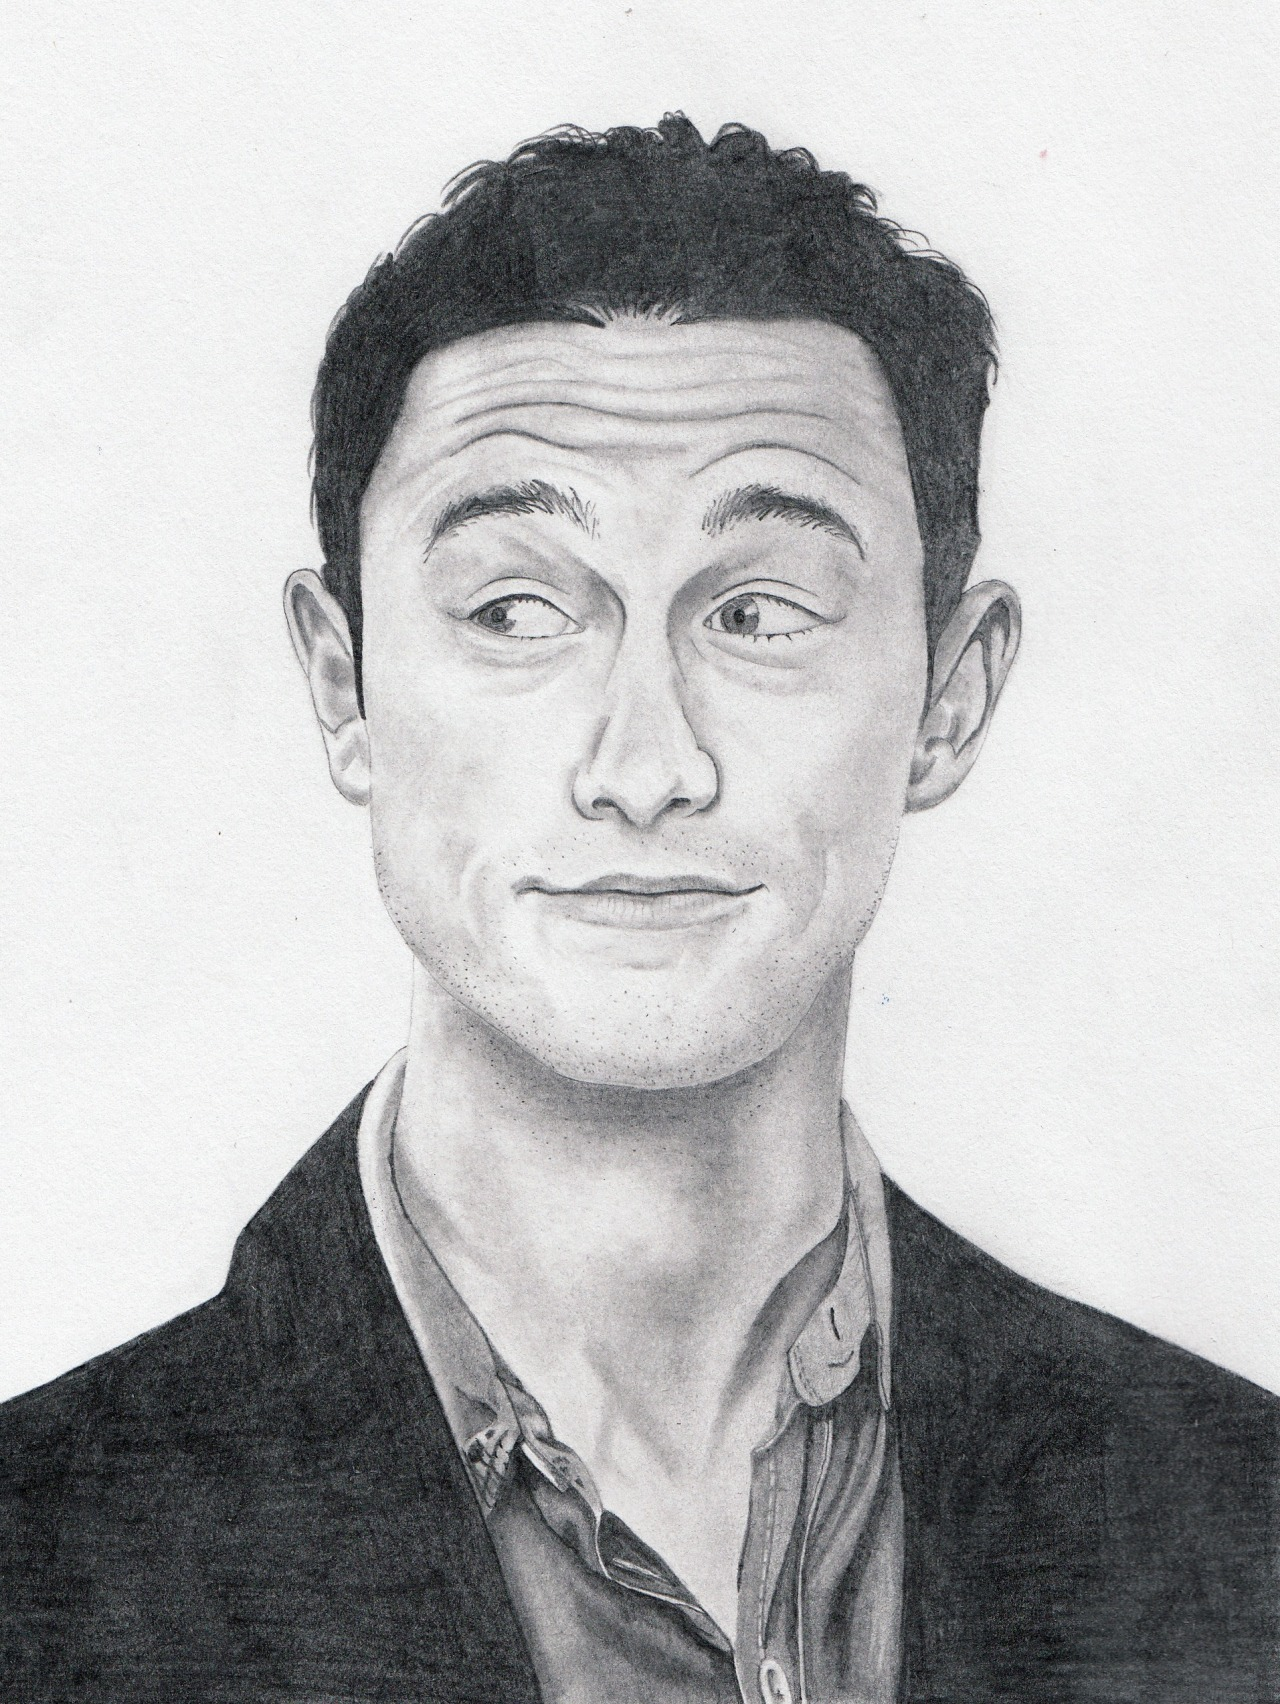 Joseph Gordon-Levitt sketch sold at the Culture Shock exhibit earlier this month